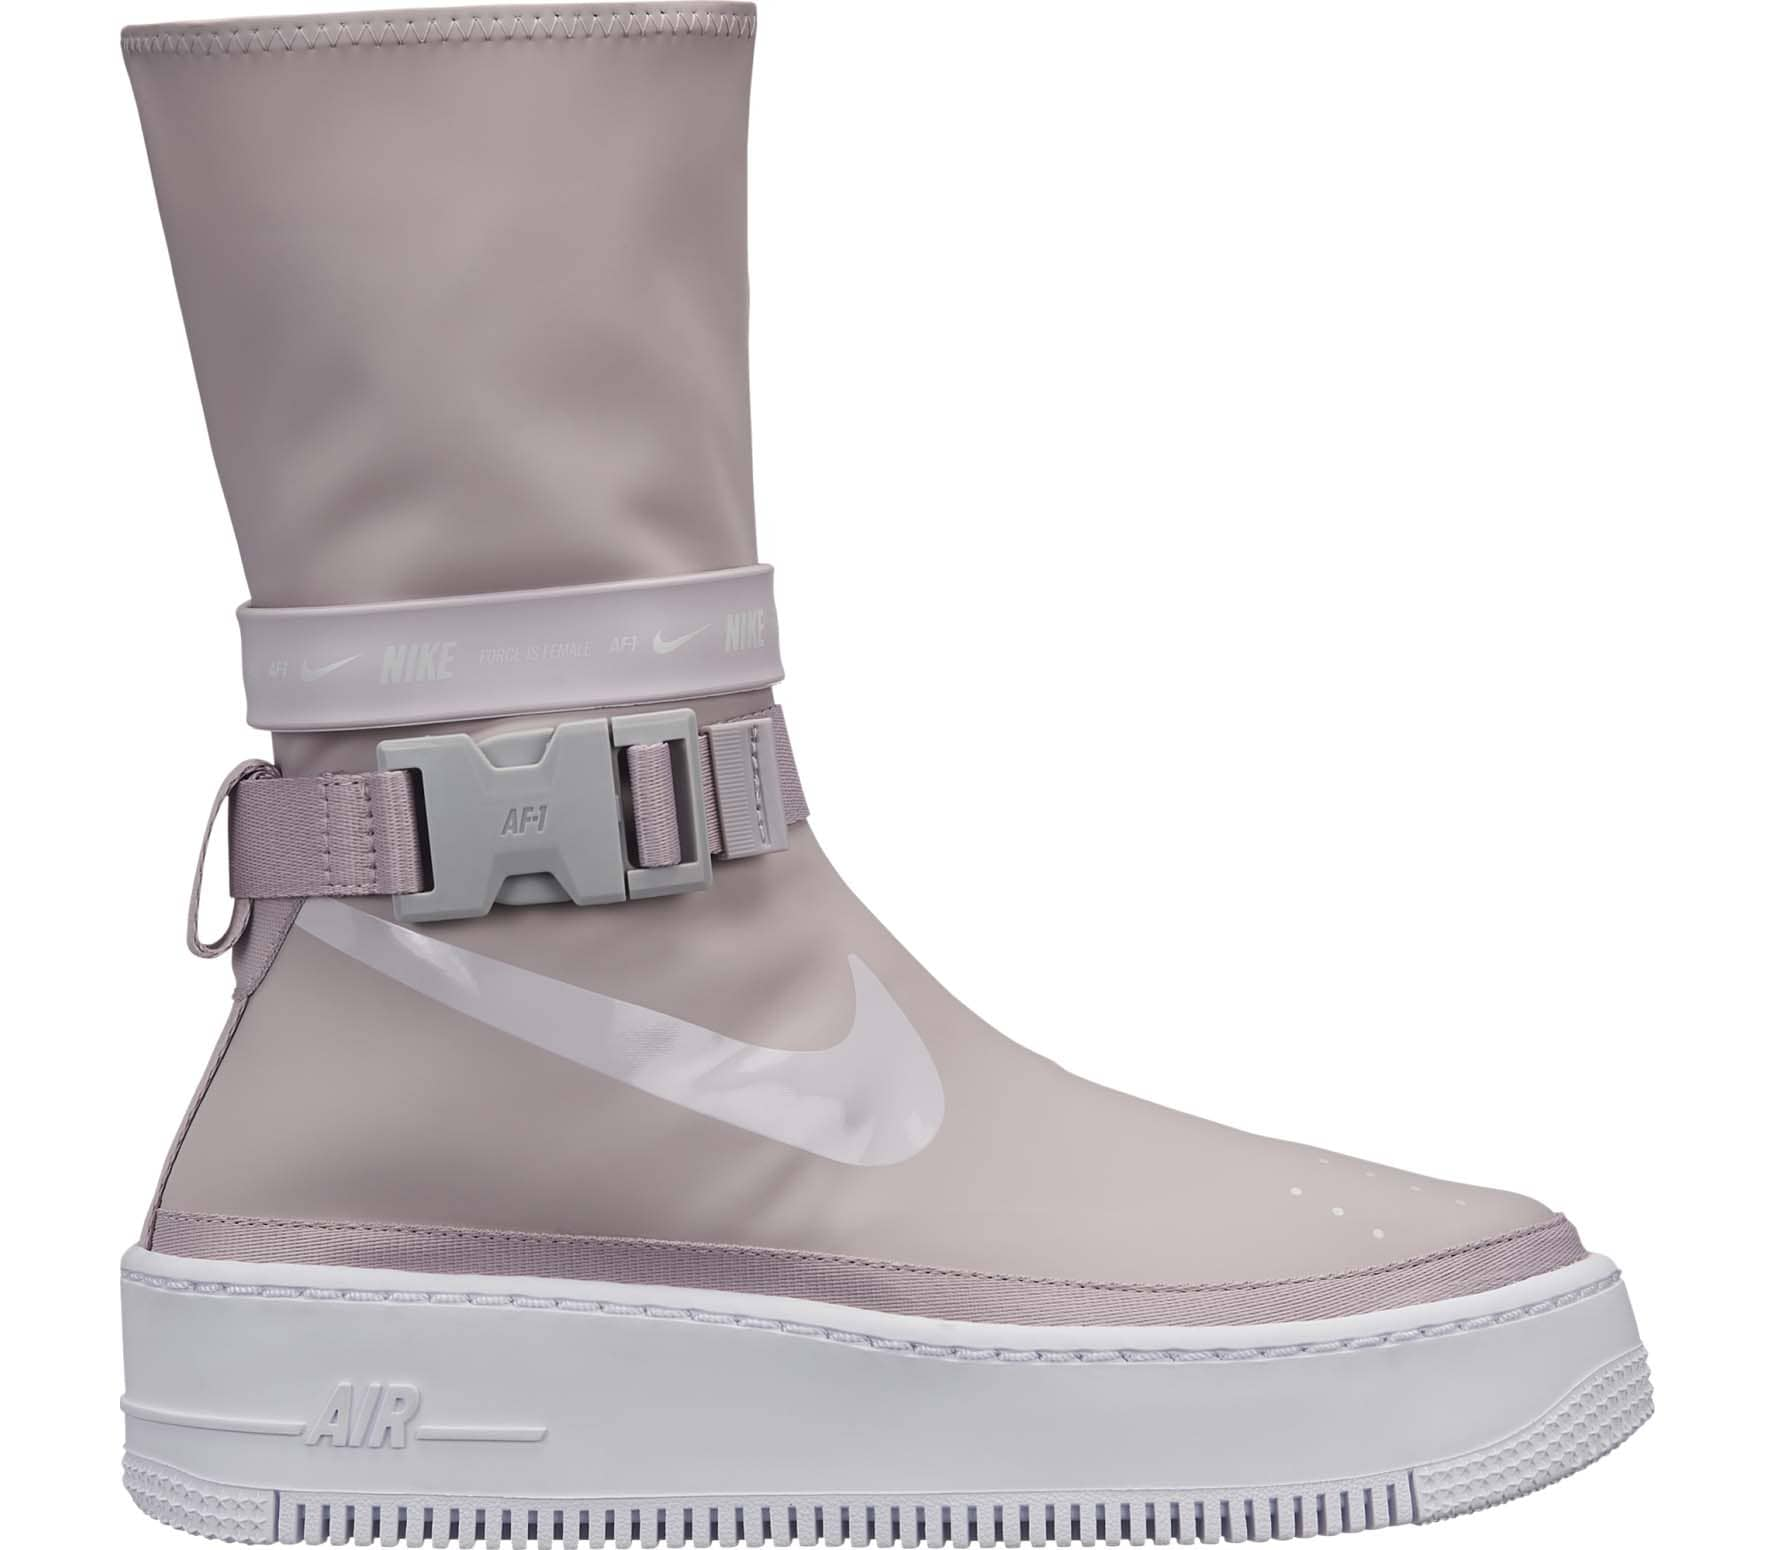 Nike Boots Air Force Boots Sports Shoes Online Sale